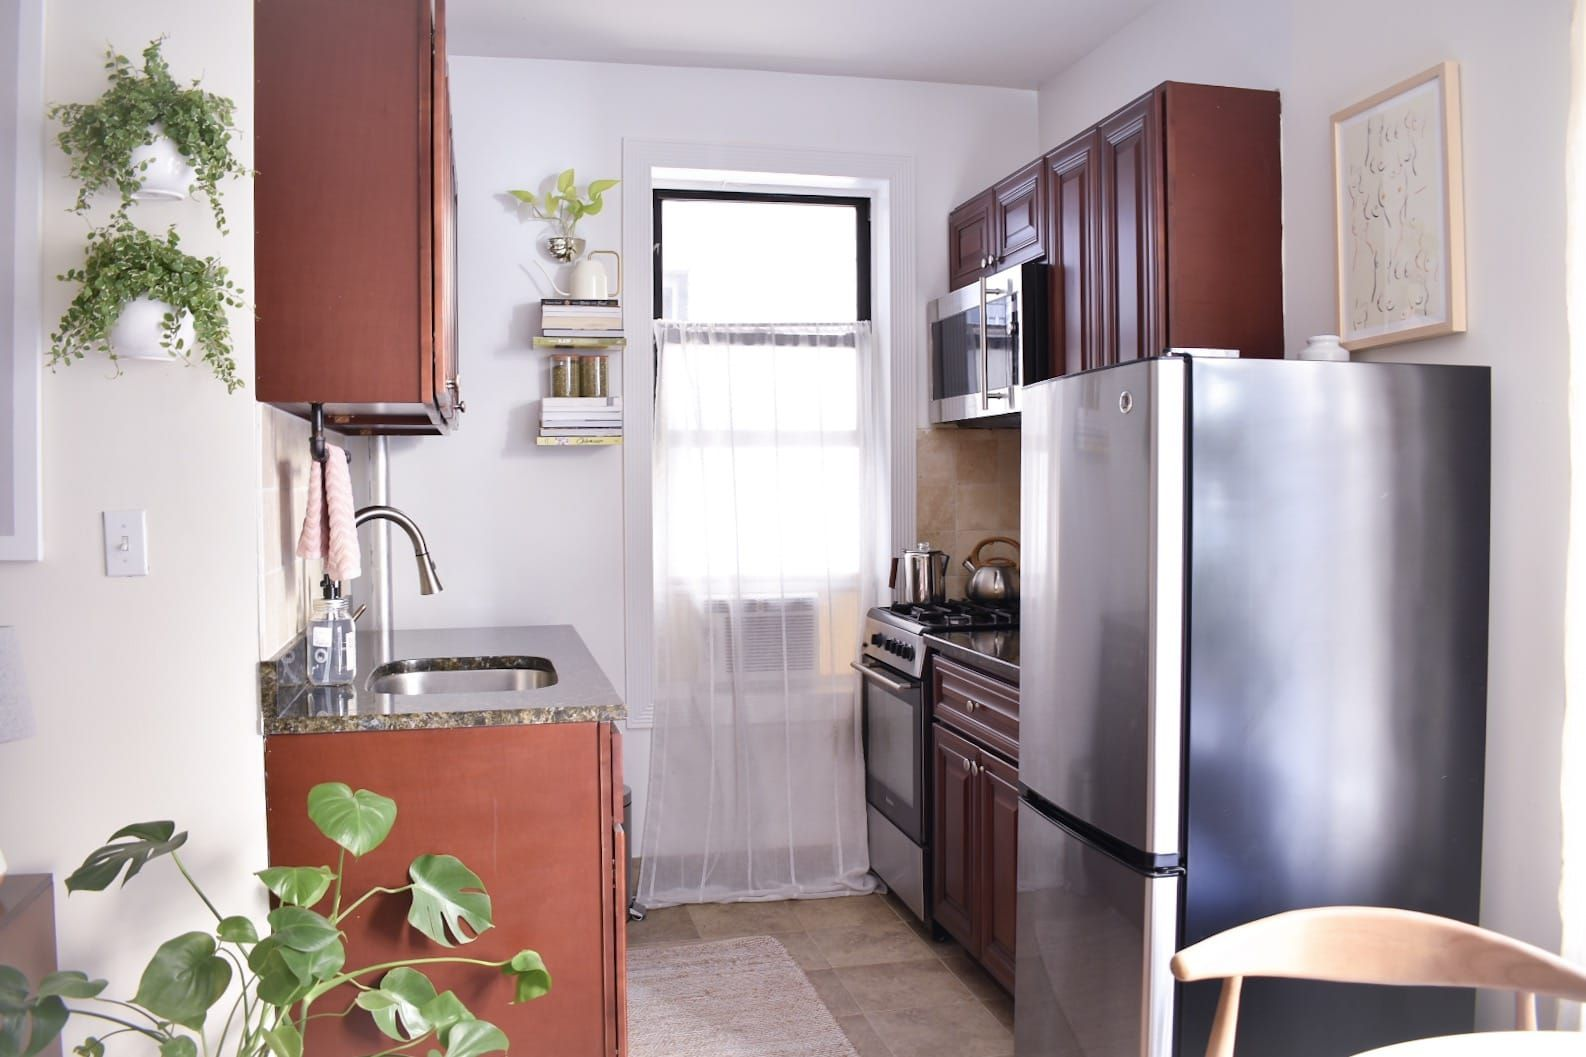 This Tiny 310 Square Foot Home Is One Of The Loveliest Studio Apartments Small Studio Apartment Decorating Studio Apartment Decorating Studio Apartment Layout